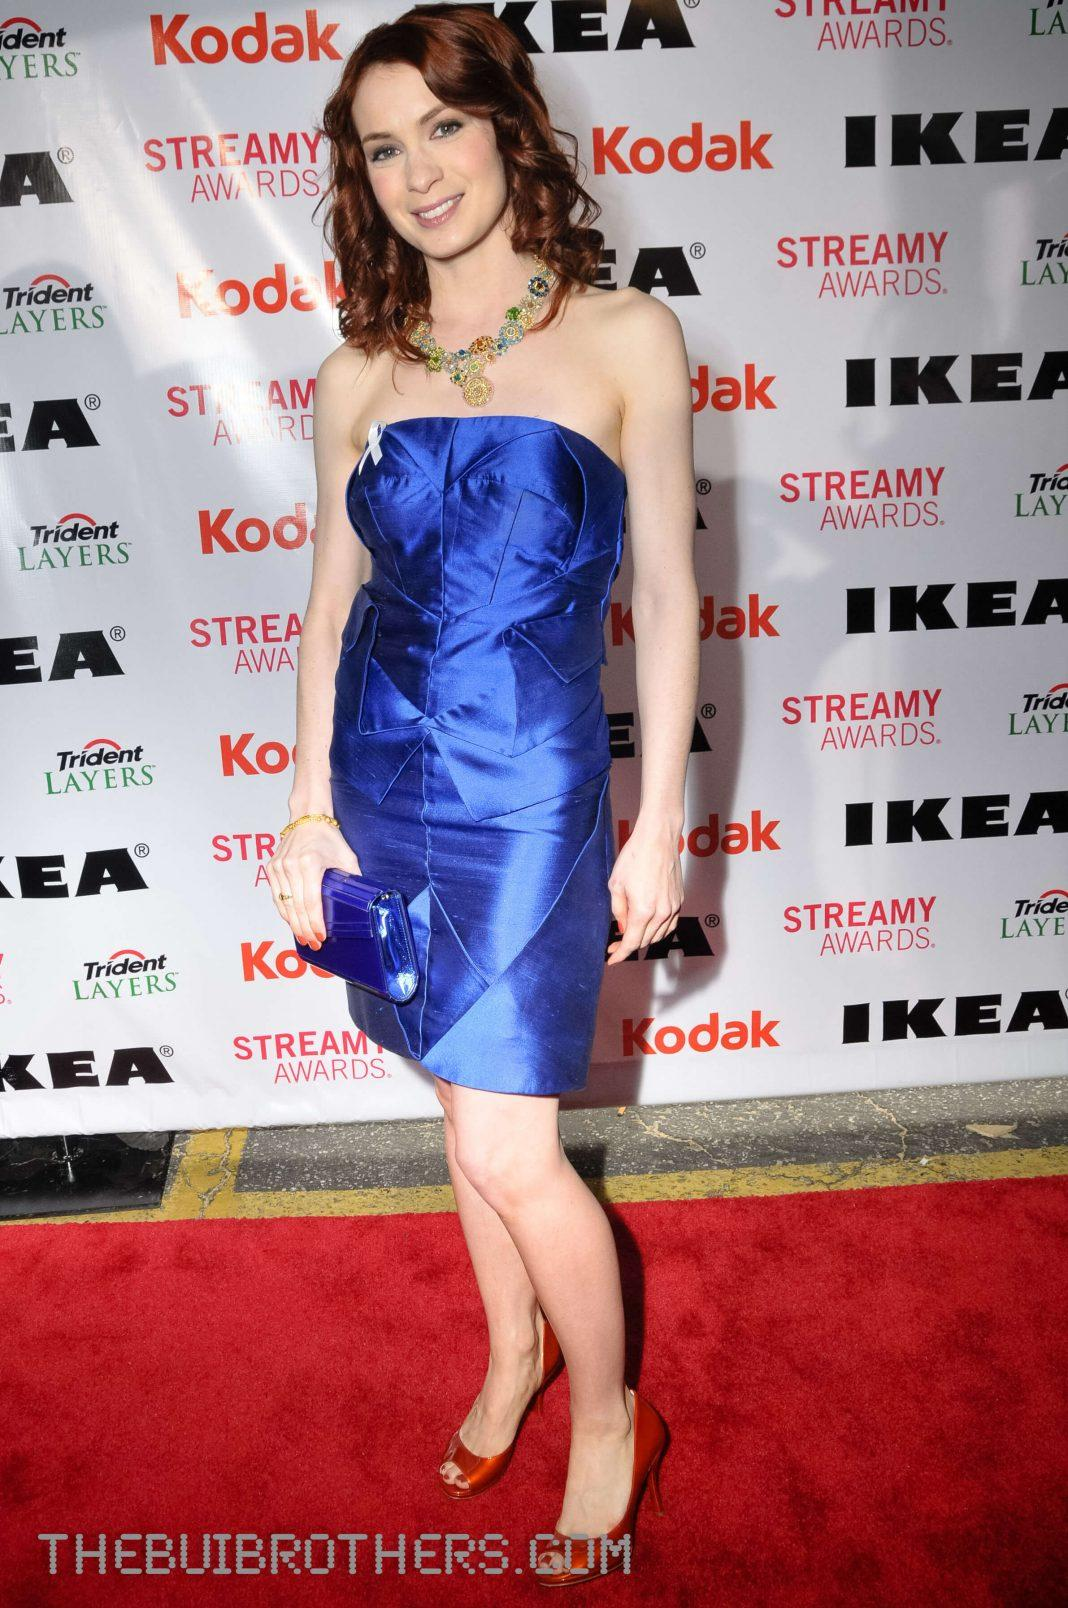 Felicia Day sexy topless pics